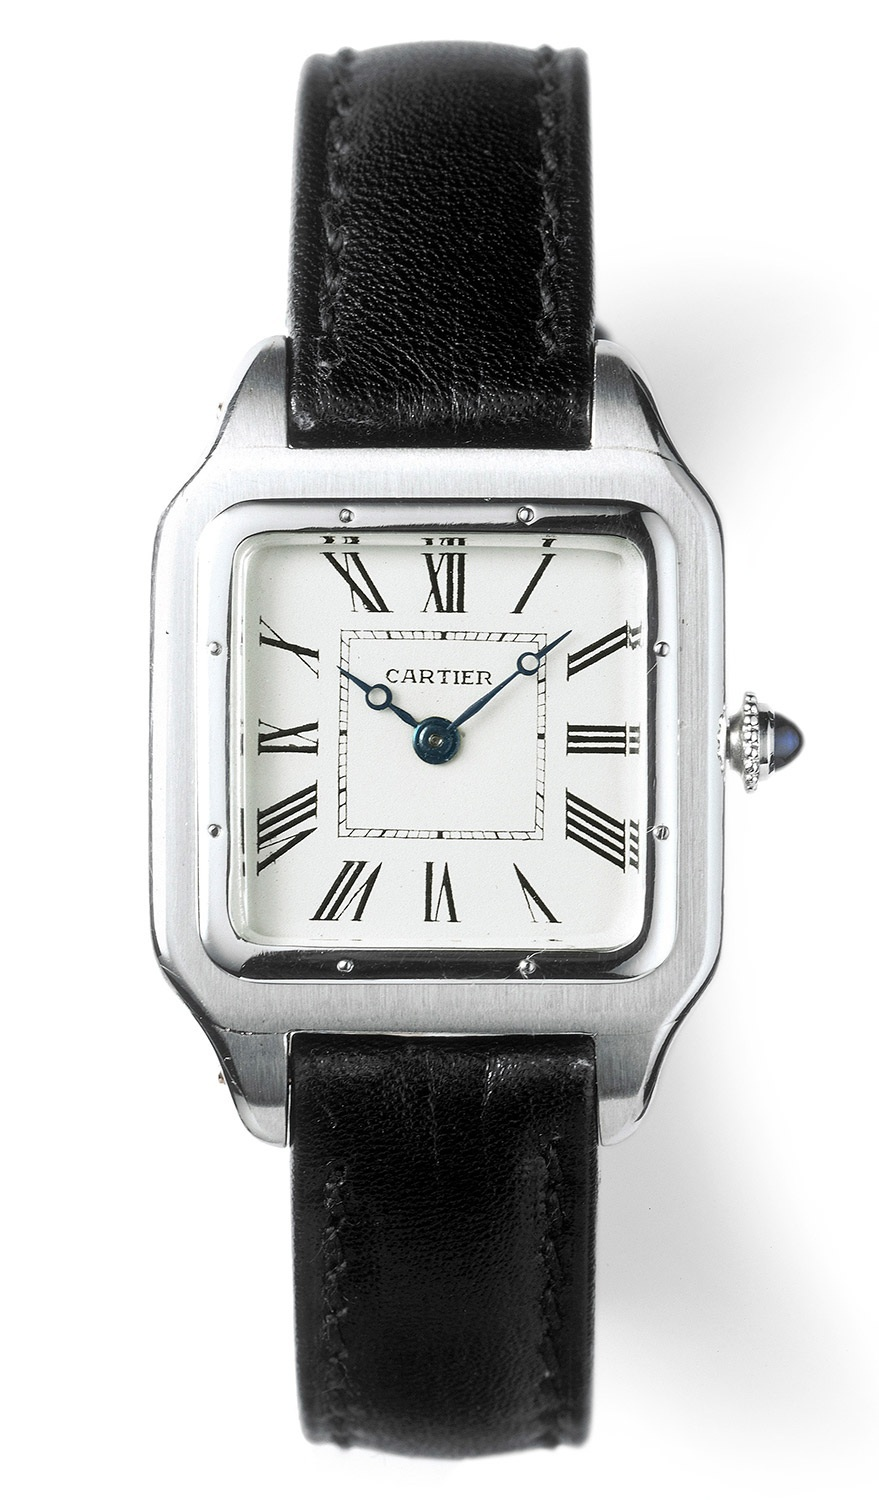 A vintage Cartier Santos from the early 1900s.